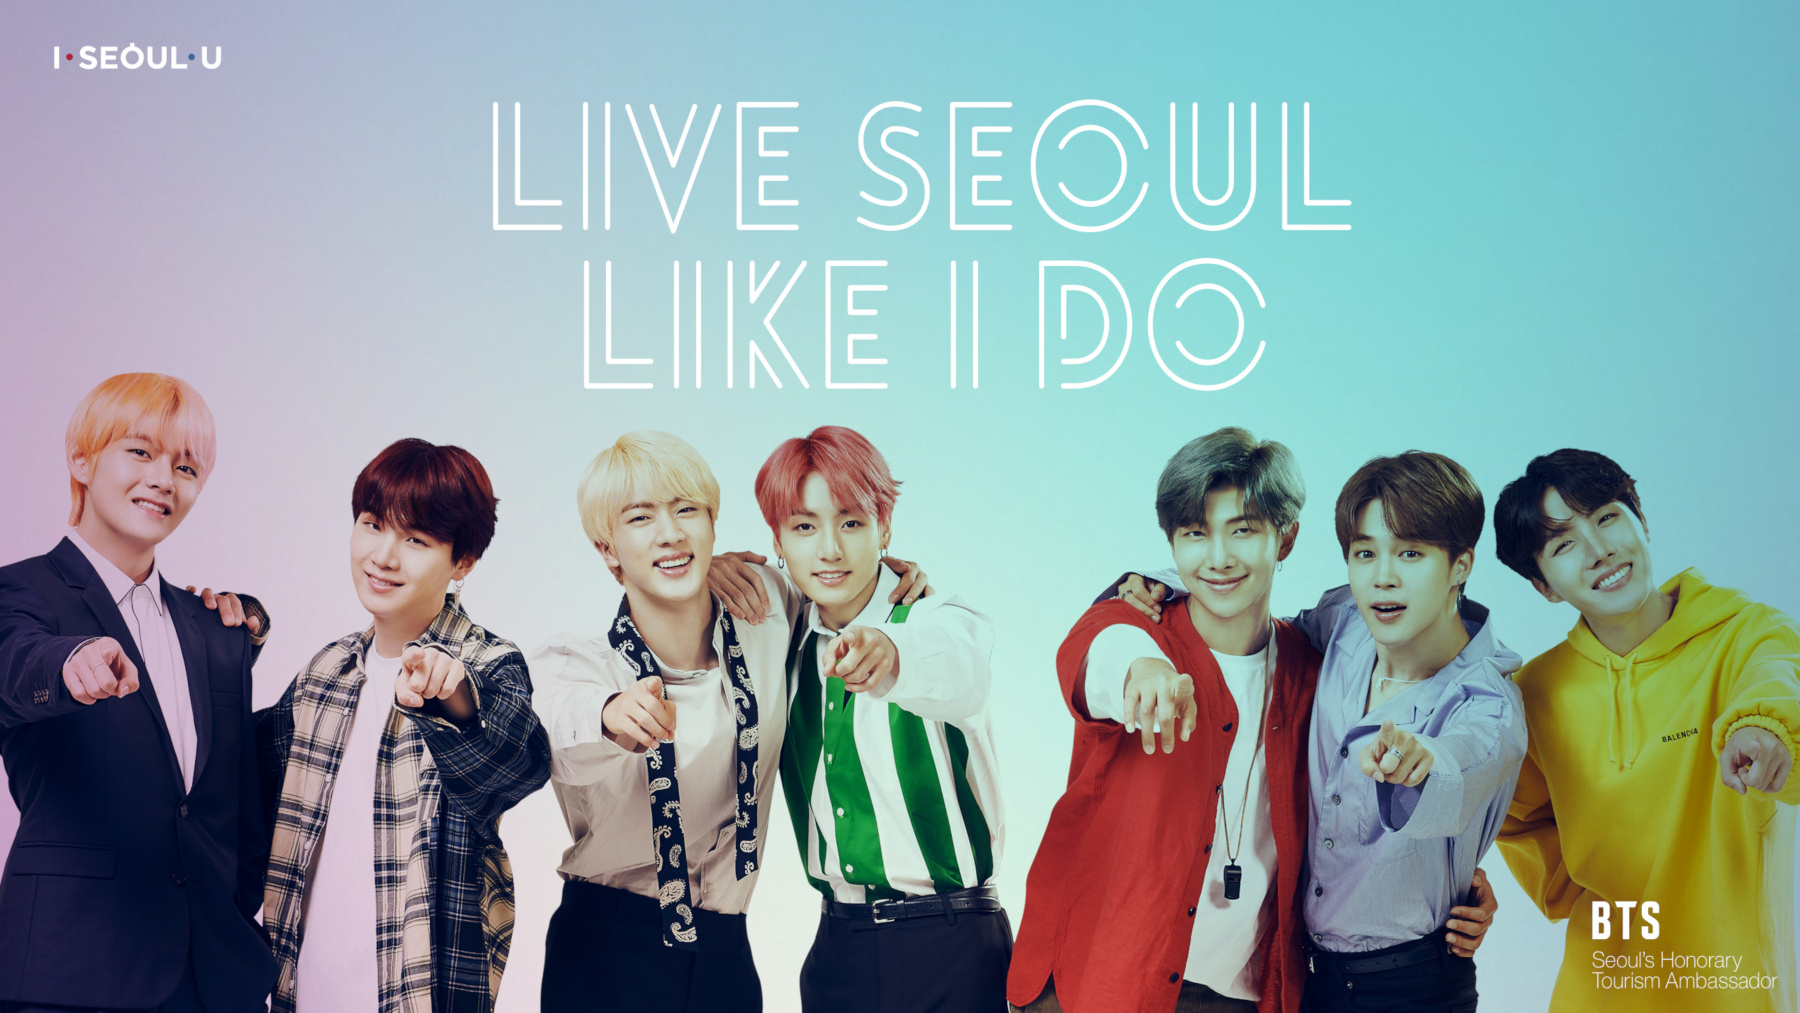 BTS want you to visit and love Seoul just like they do